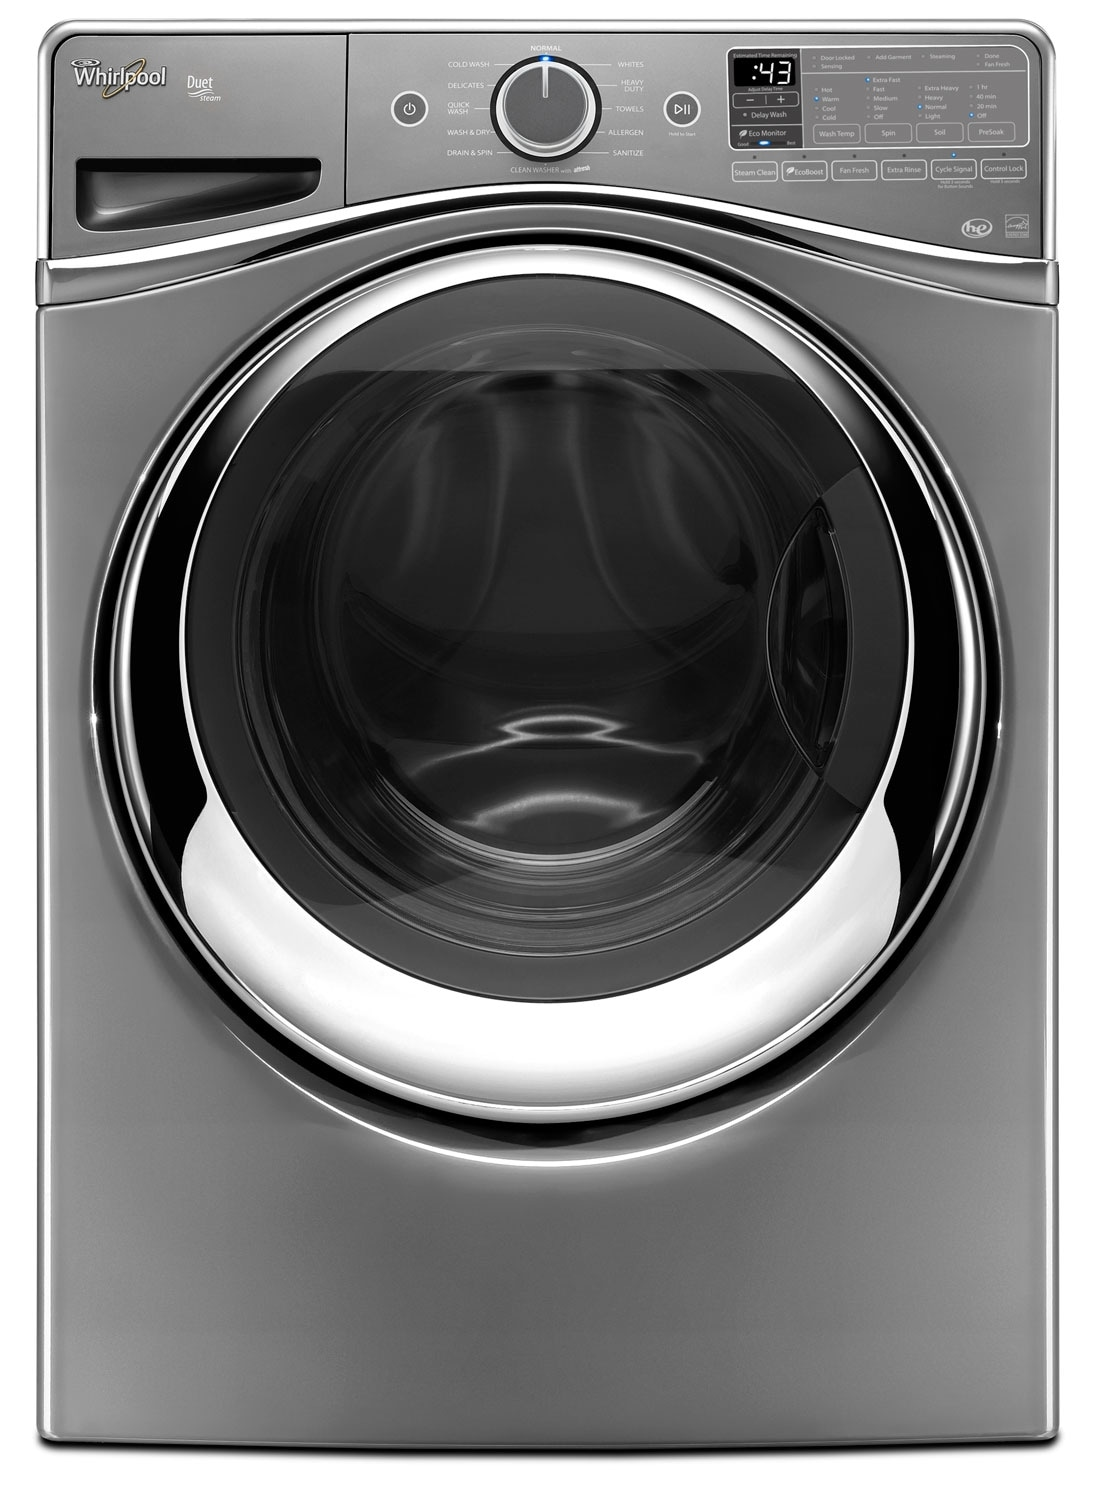 Whirlpool Chrome Shadow Front-Load Washer (5.2 Cu. Ft. IEC) - WFW95HEDC